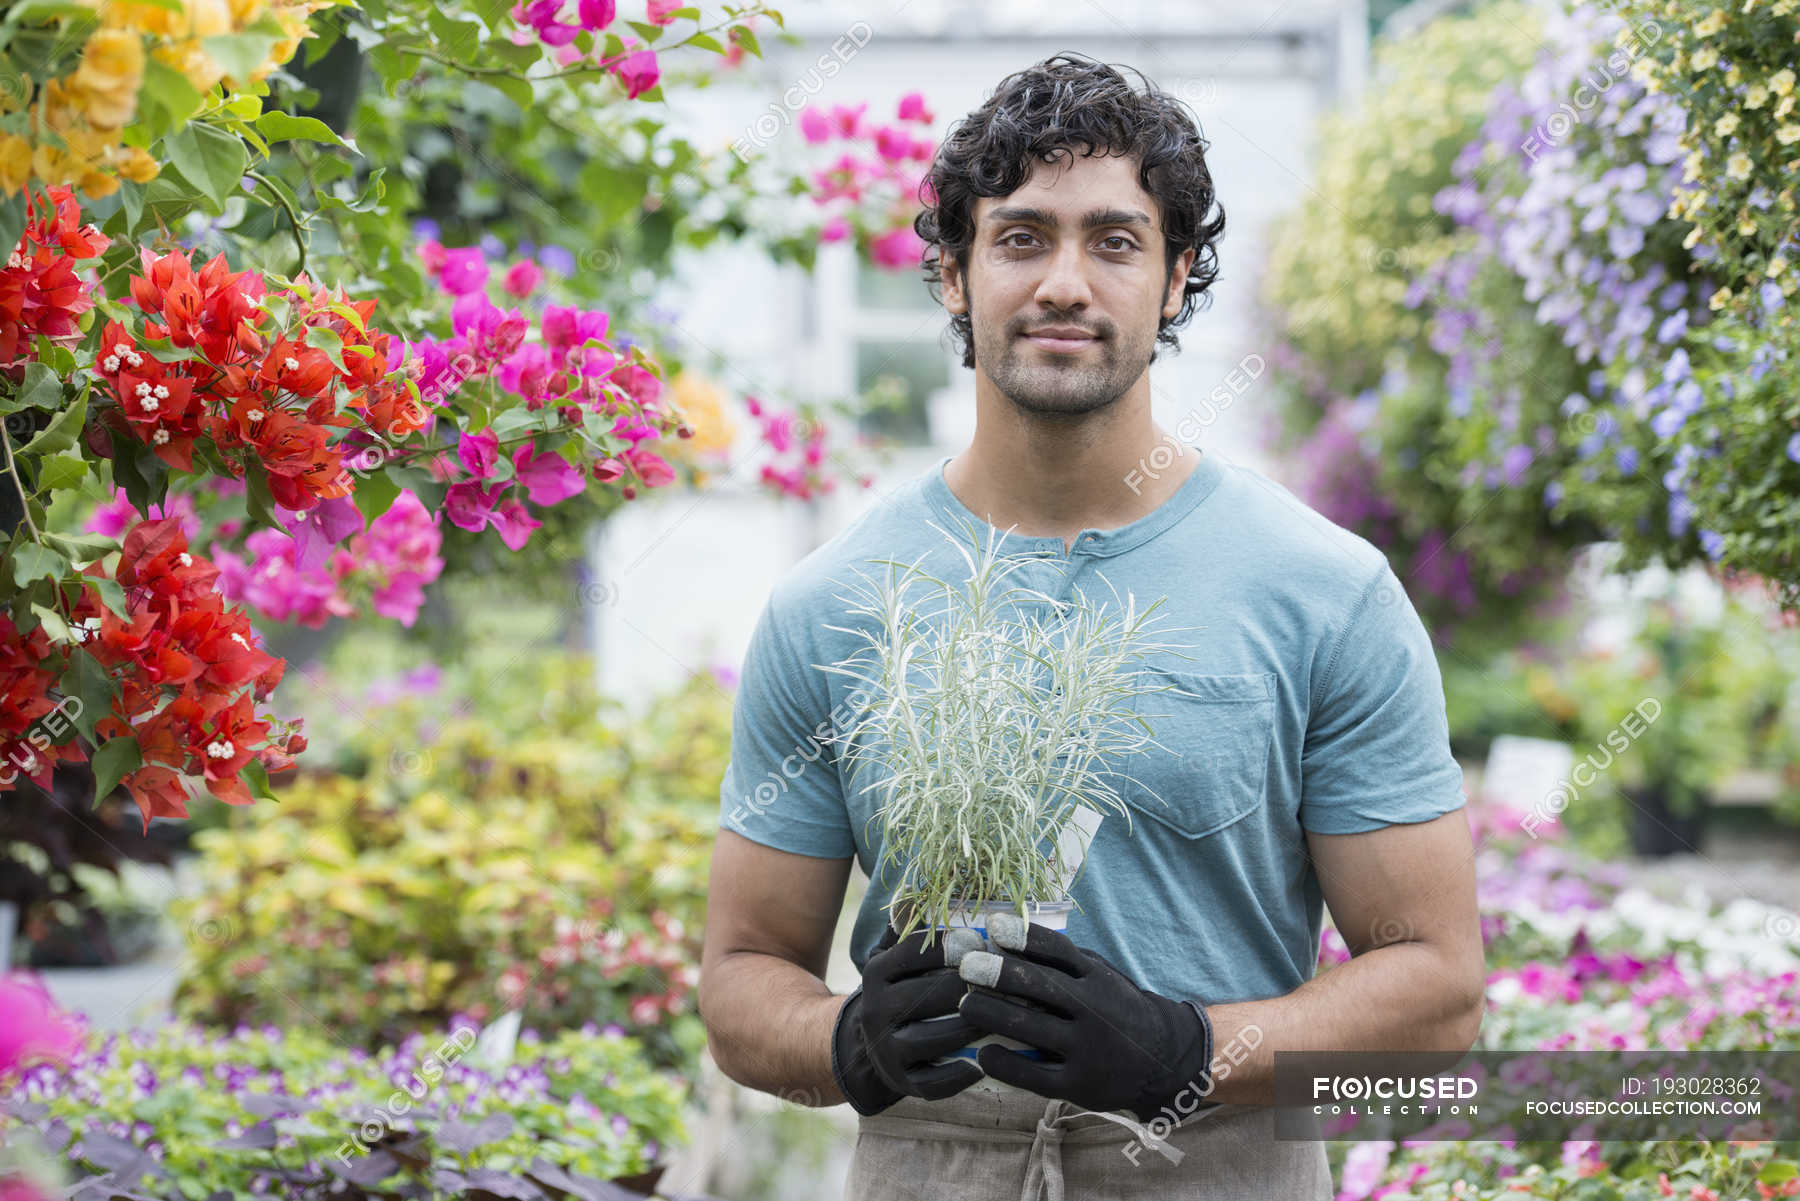 Young Man Holding Potted Plant In Greenhouse Full Of Flowering